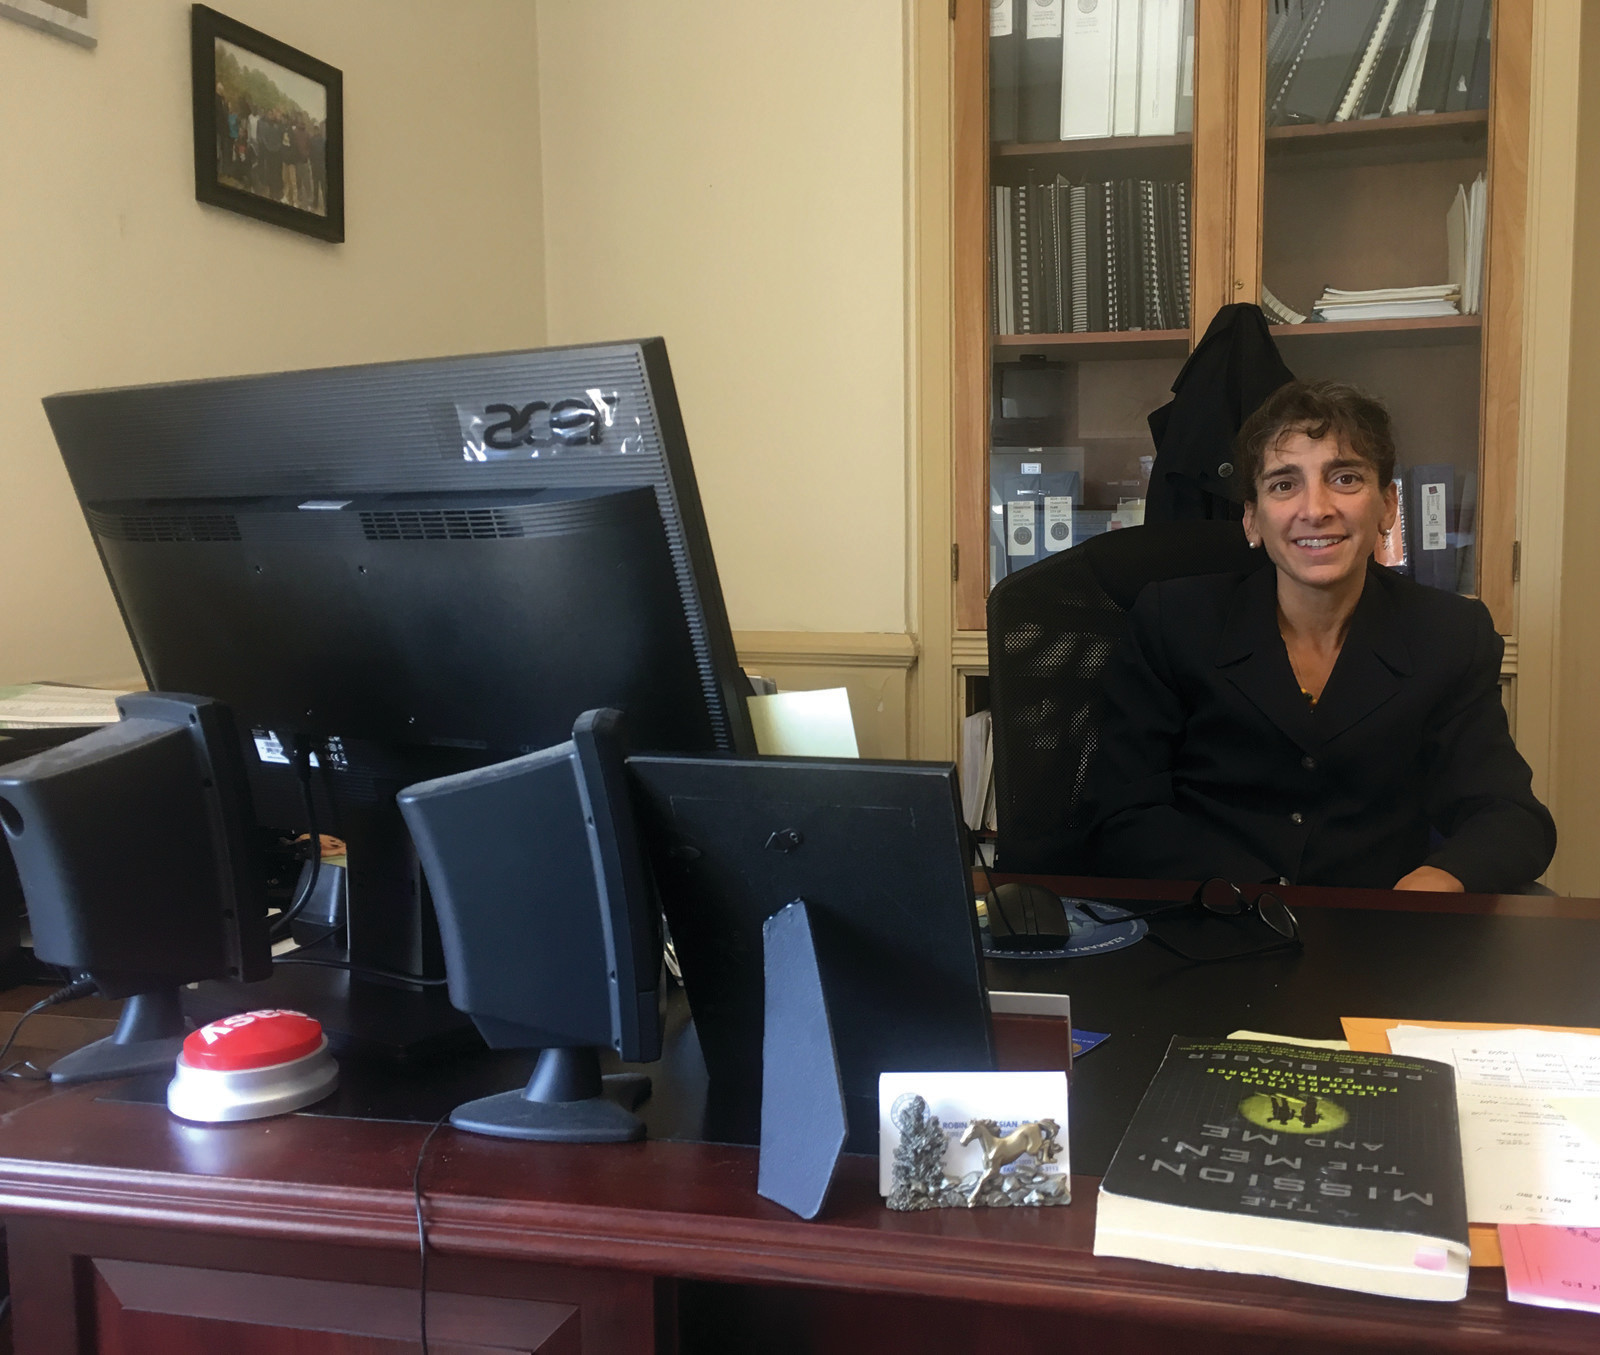 BACK HOME: Cranston Director of Administration Robin Muksian began her third stint in Cranston, where she grew up, this summer.